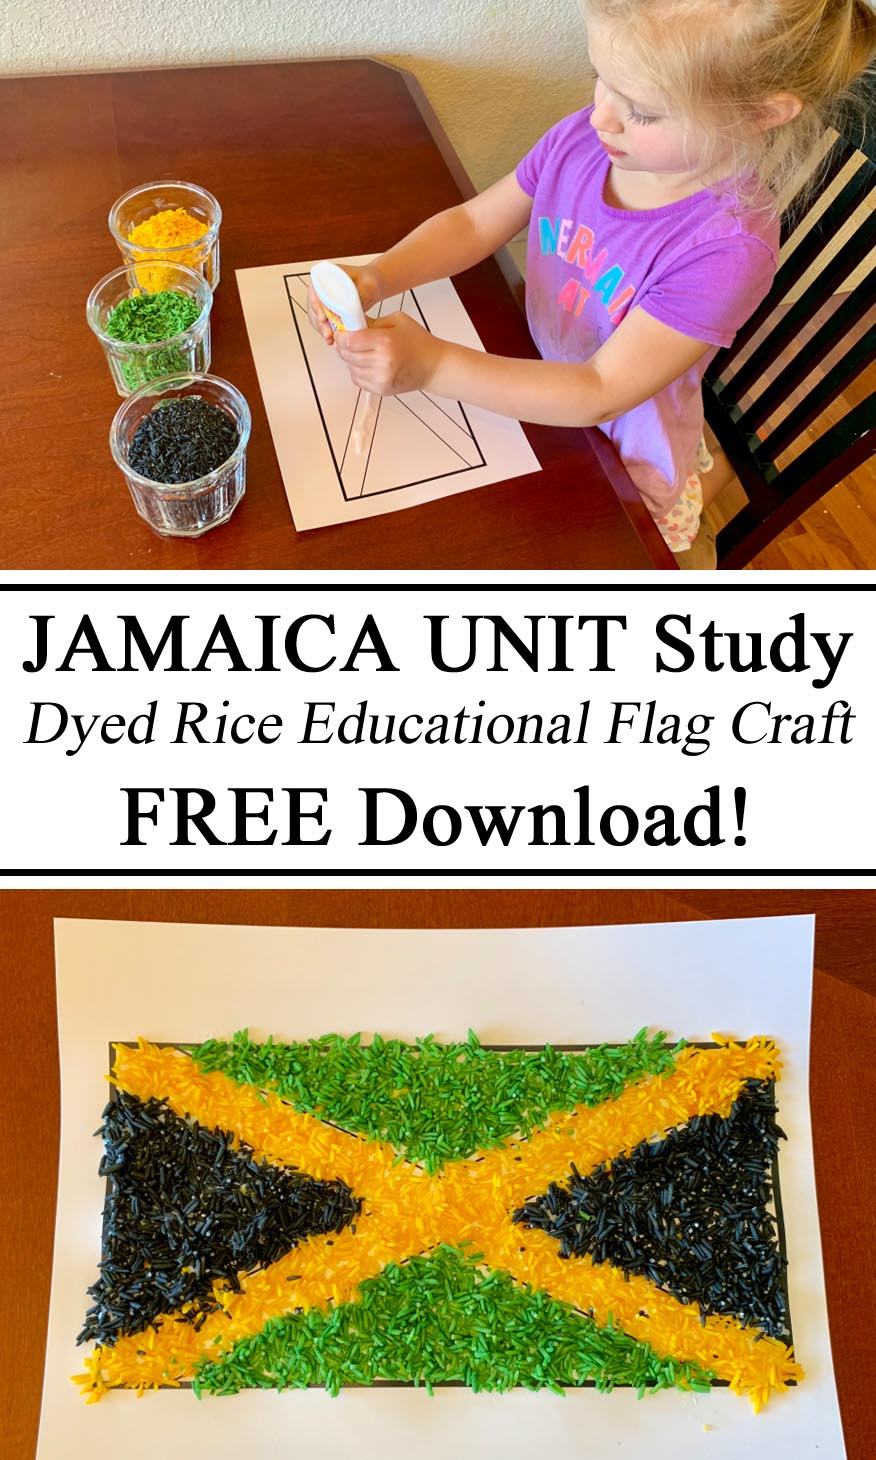 Hands on Learning, Jamaica Jamaican Unit Flag Craft Arts Activity Study Inspiration Dyed Died Rice Colored Coloured Educational Learning Unschooling, Ideas, Parents Educators, Preschool, PreK, Kindergarten, Montessori STEM STEAM Waldorf Let them be little #travelingthroughlearning